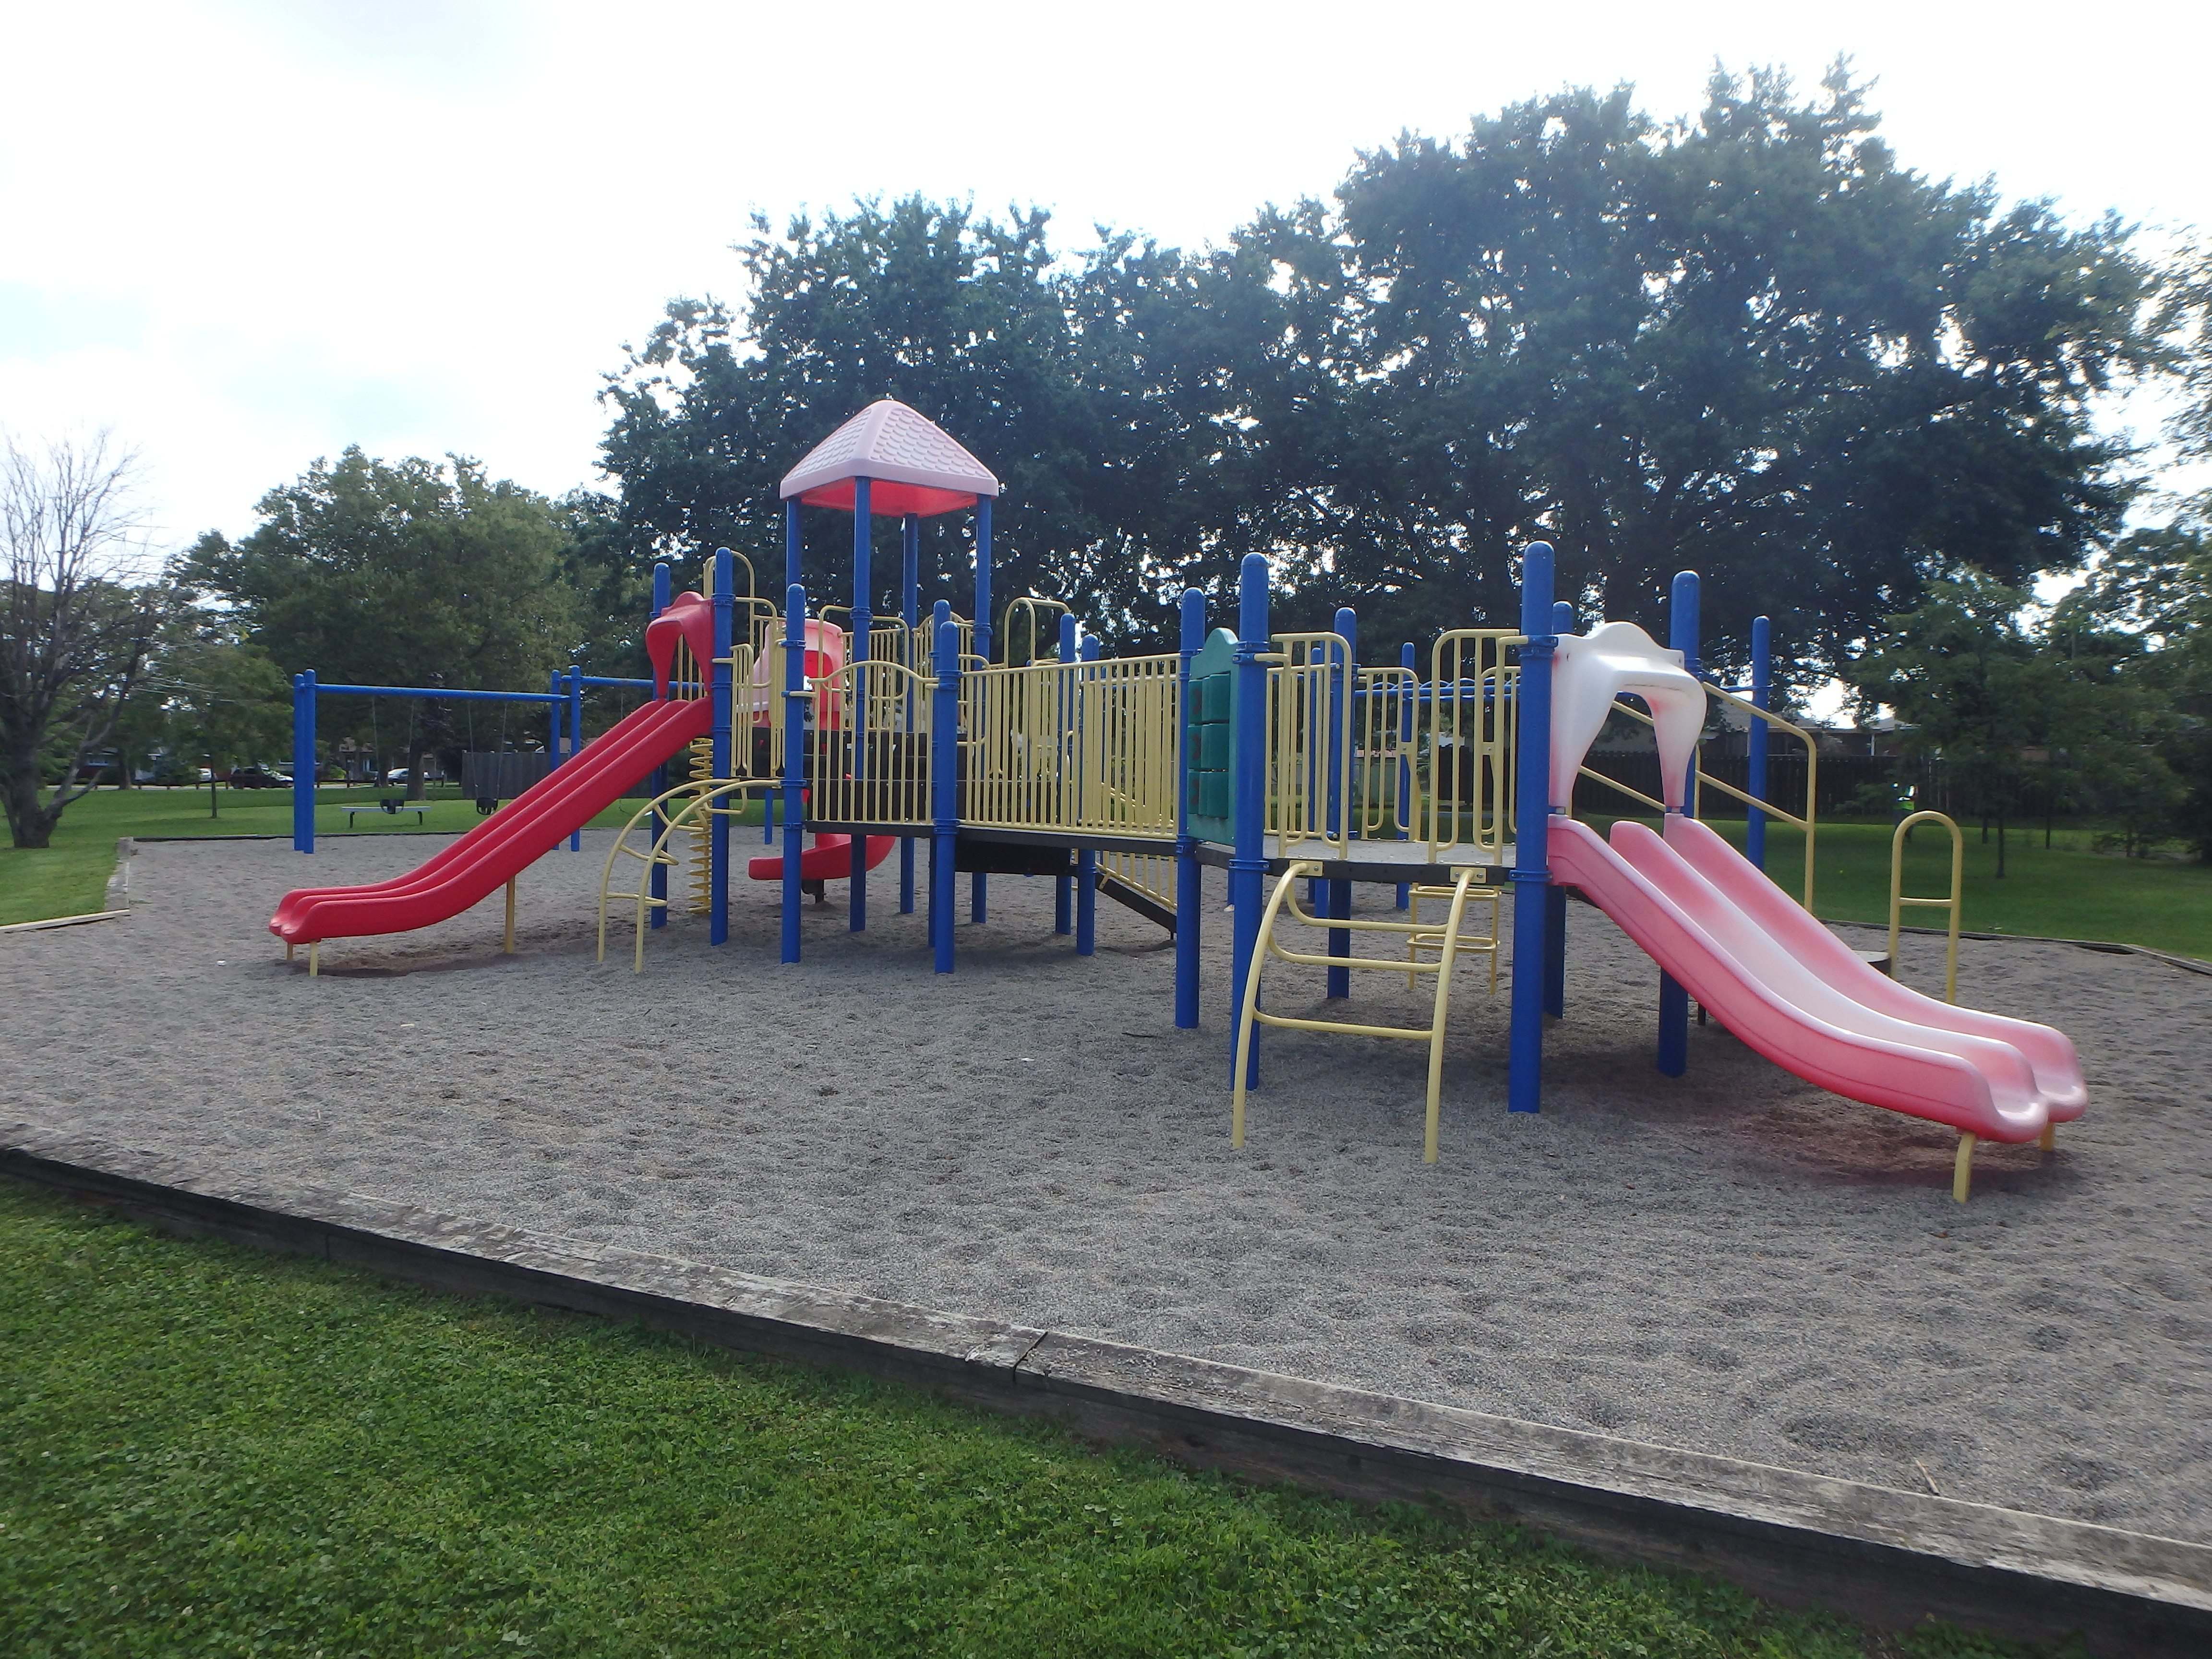 G:\!PARKS CEMETERIES FORESTRY AND HORTICULTURE\Parks-Inventory\Play-Equipment\Guy Road Park\Guy Road 1.JPG